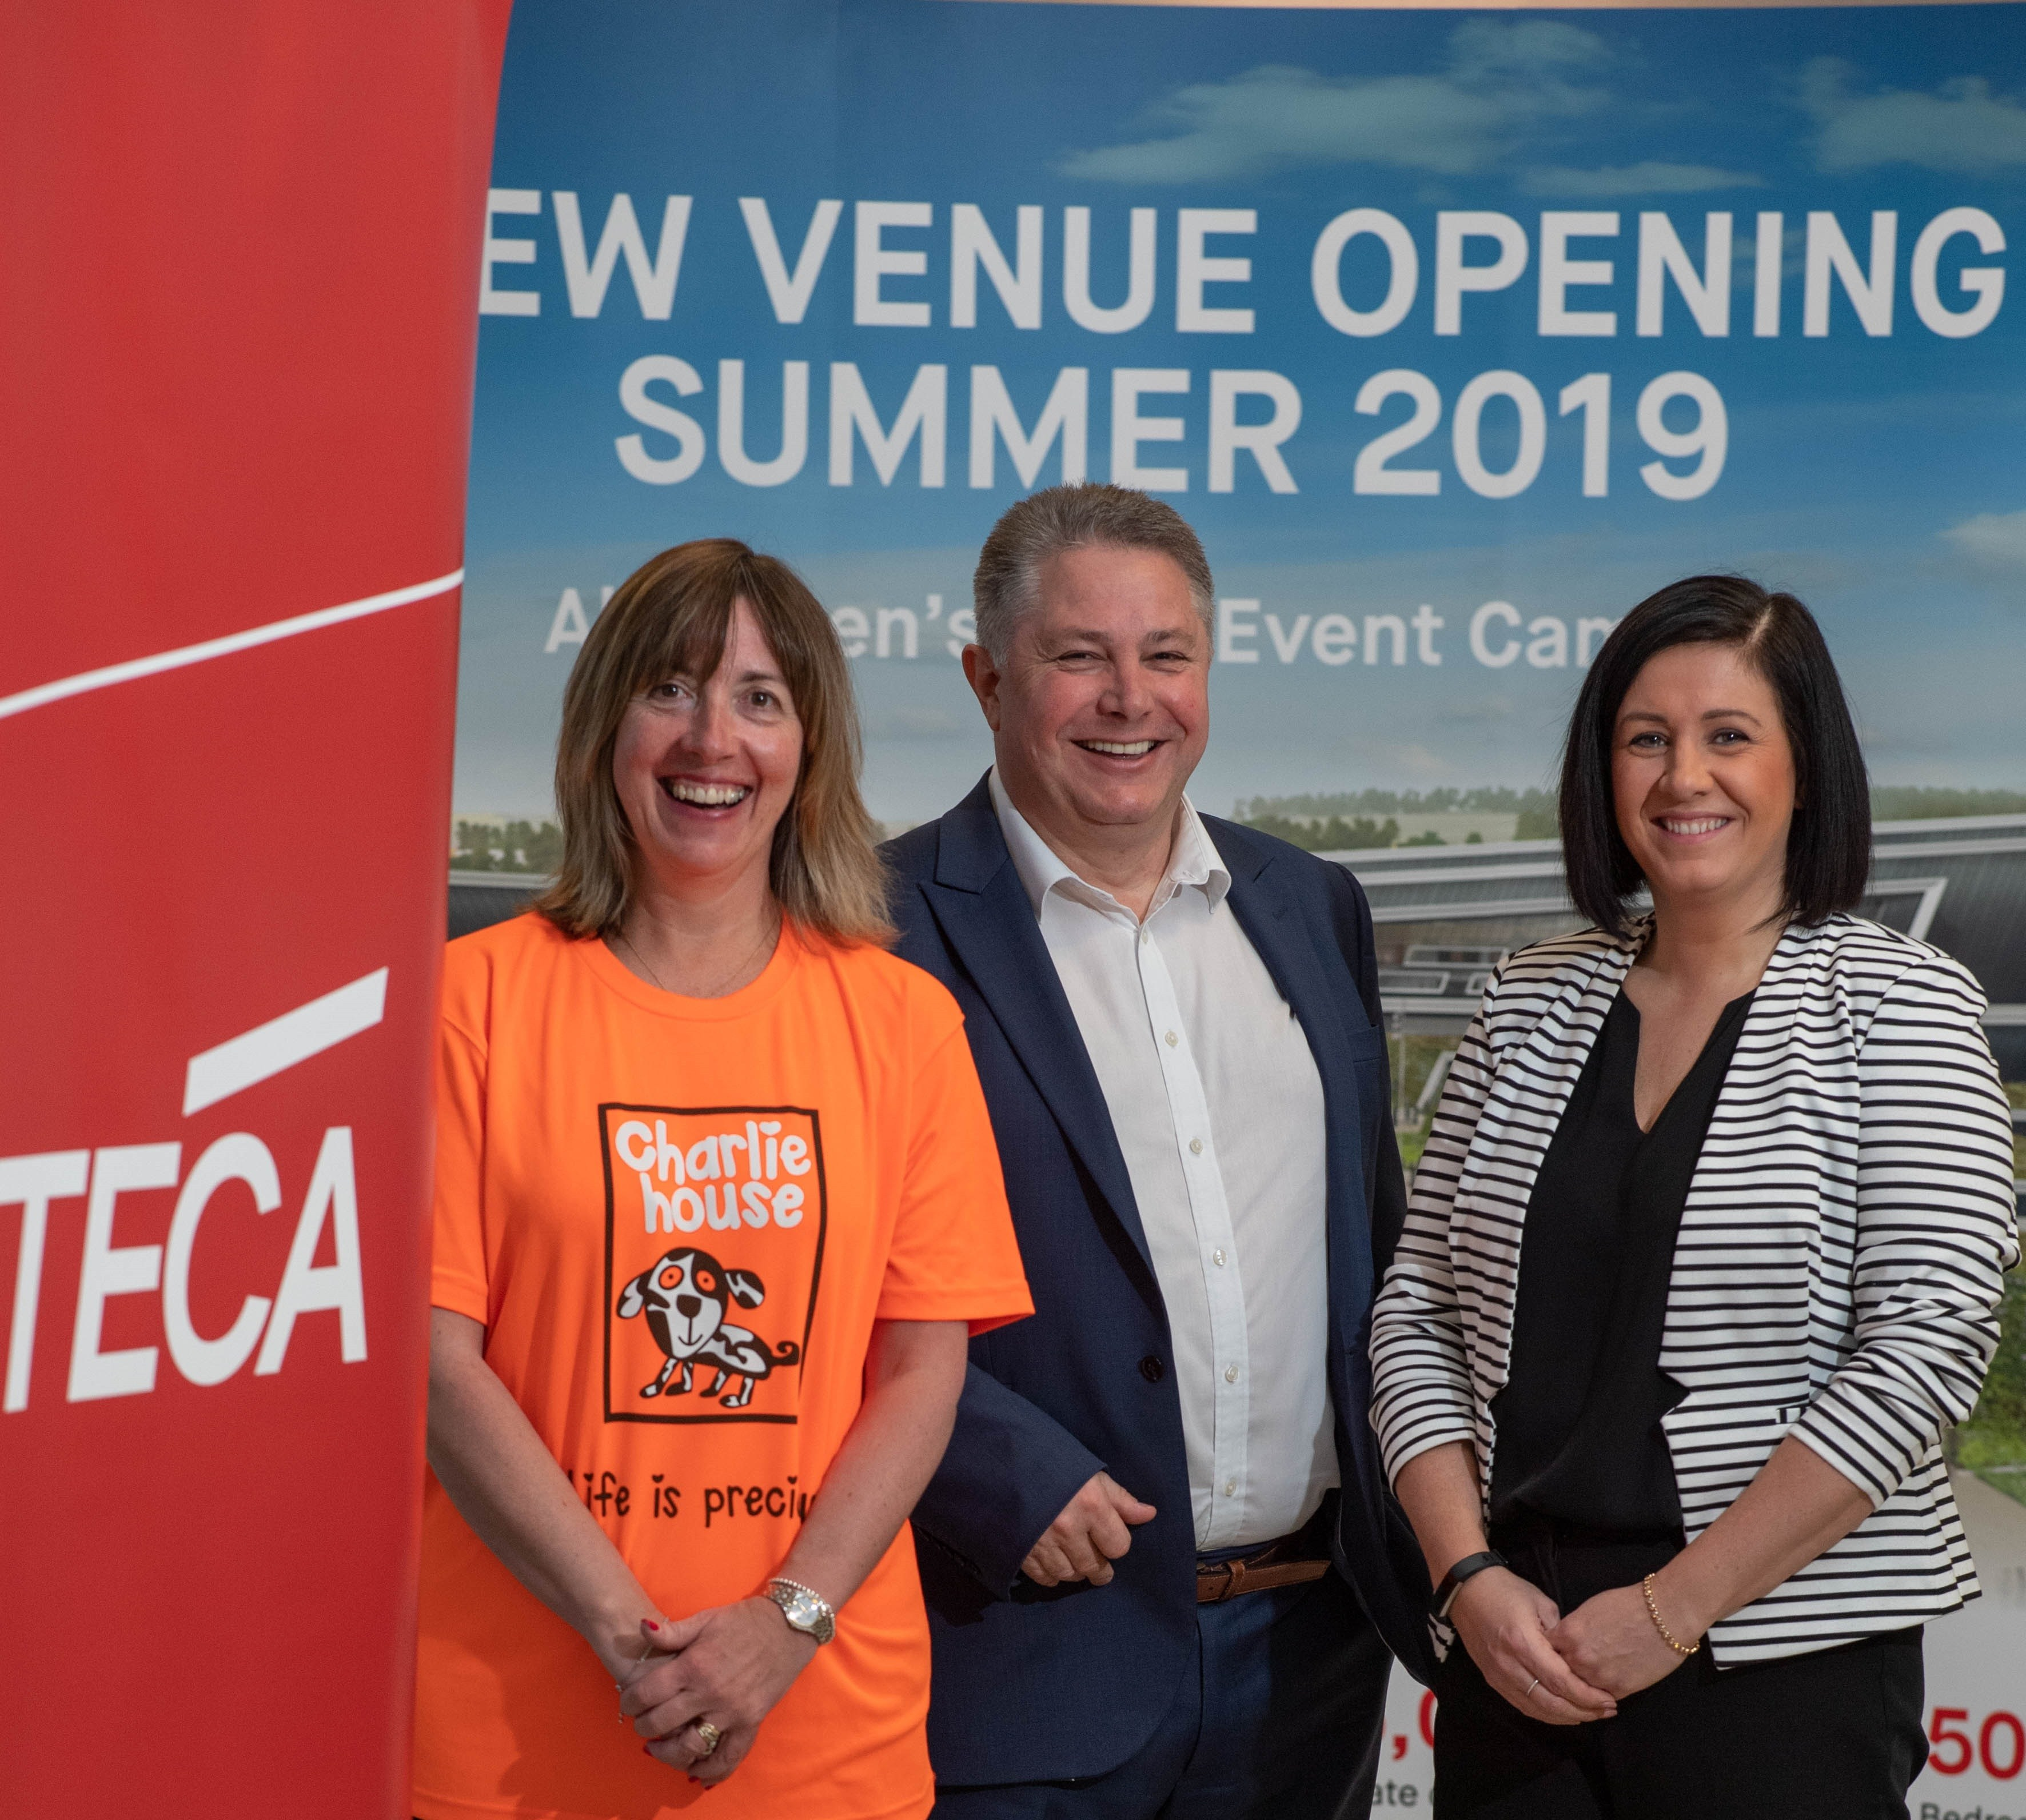 TECA choose to partner with children's charity  header internal